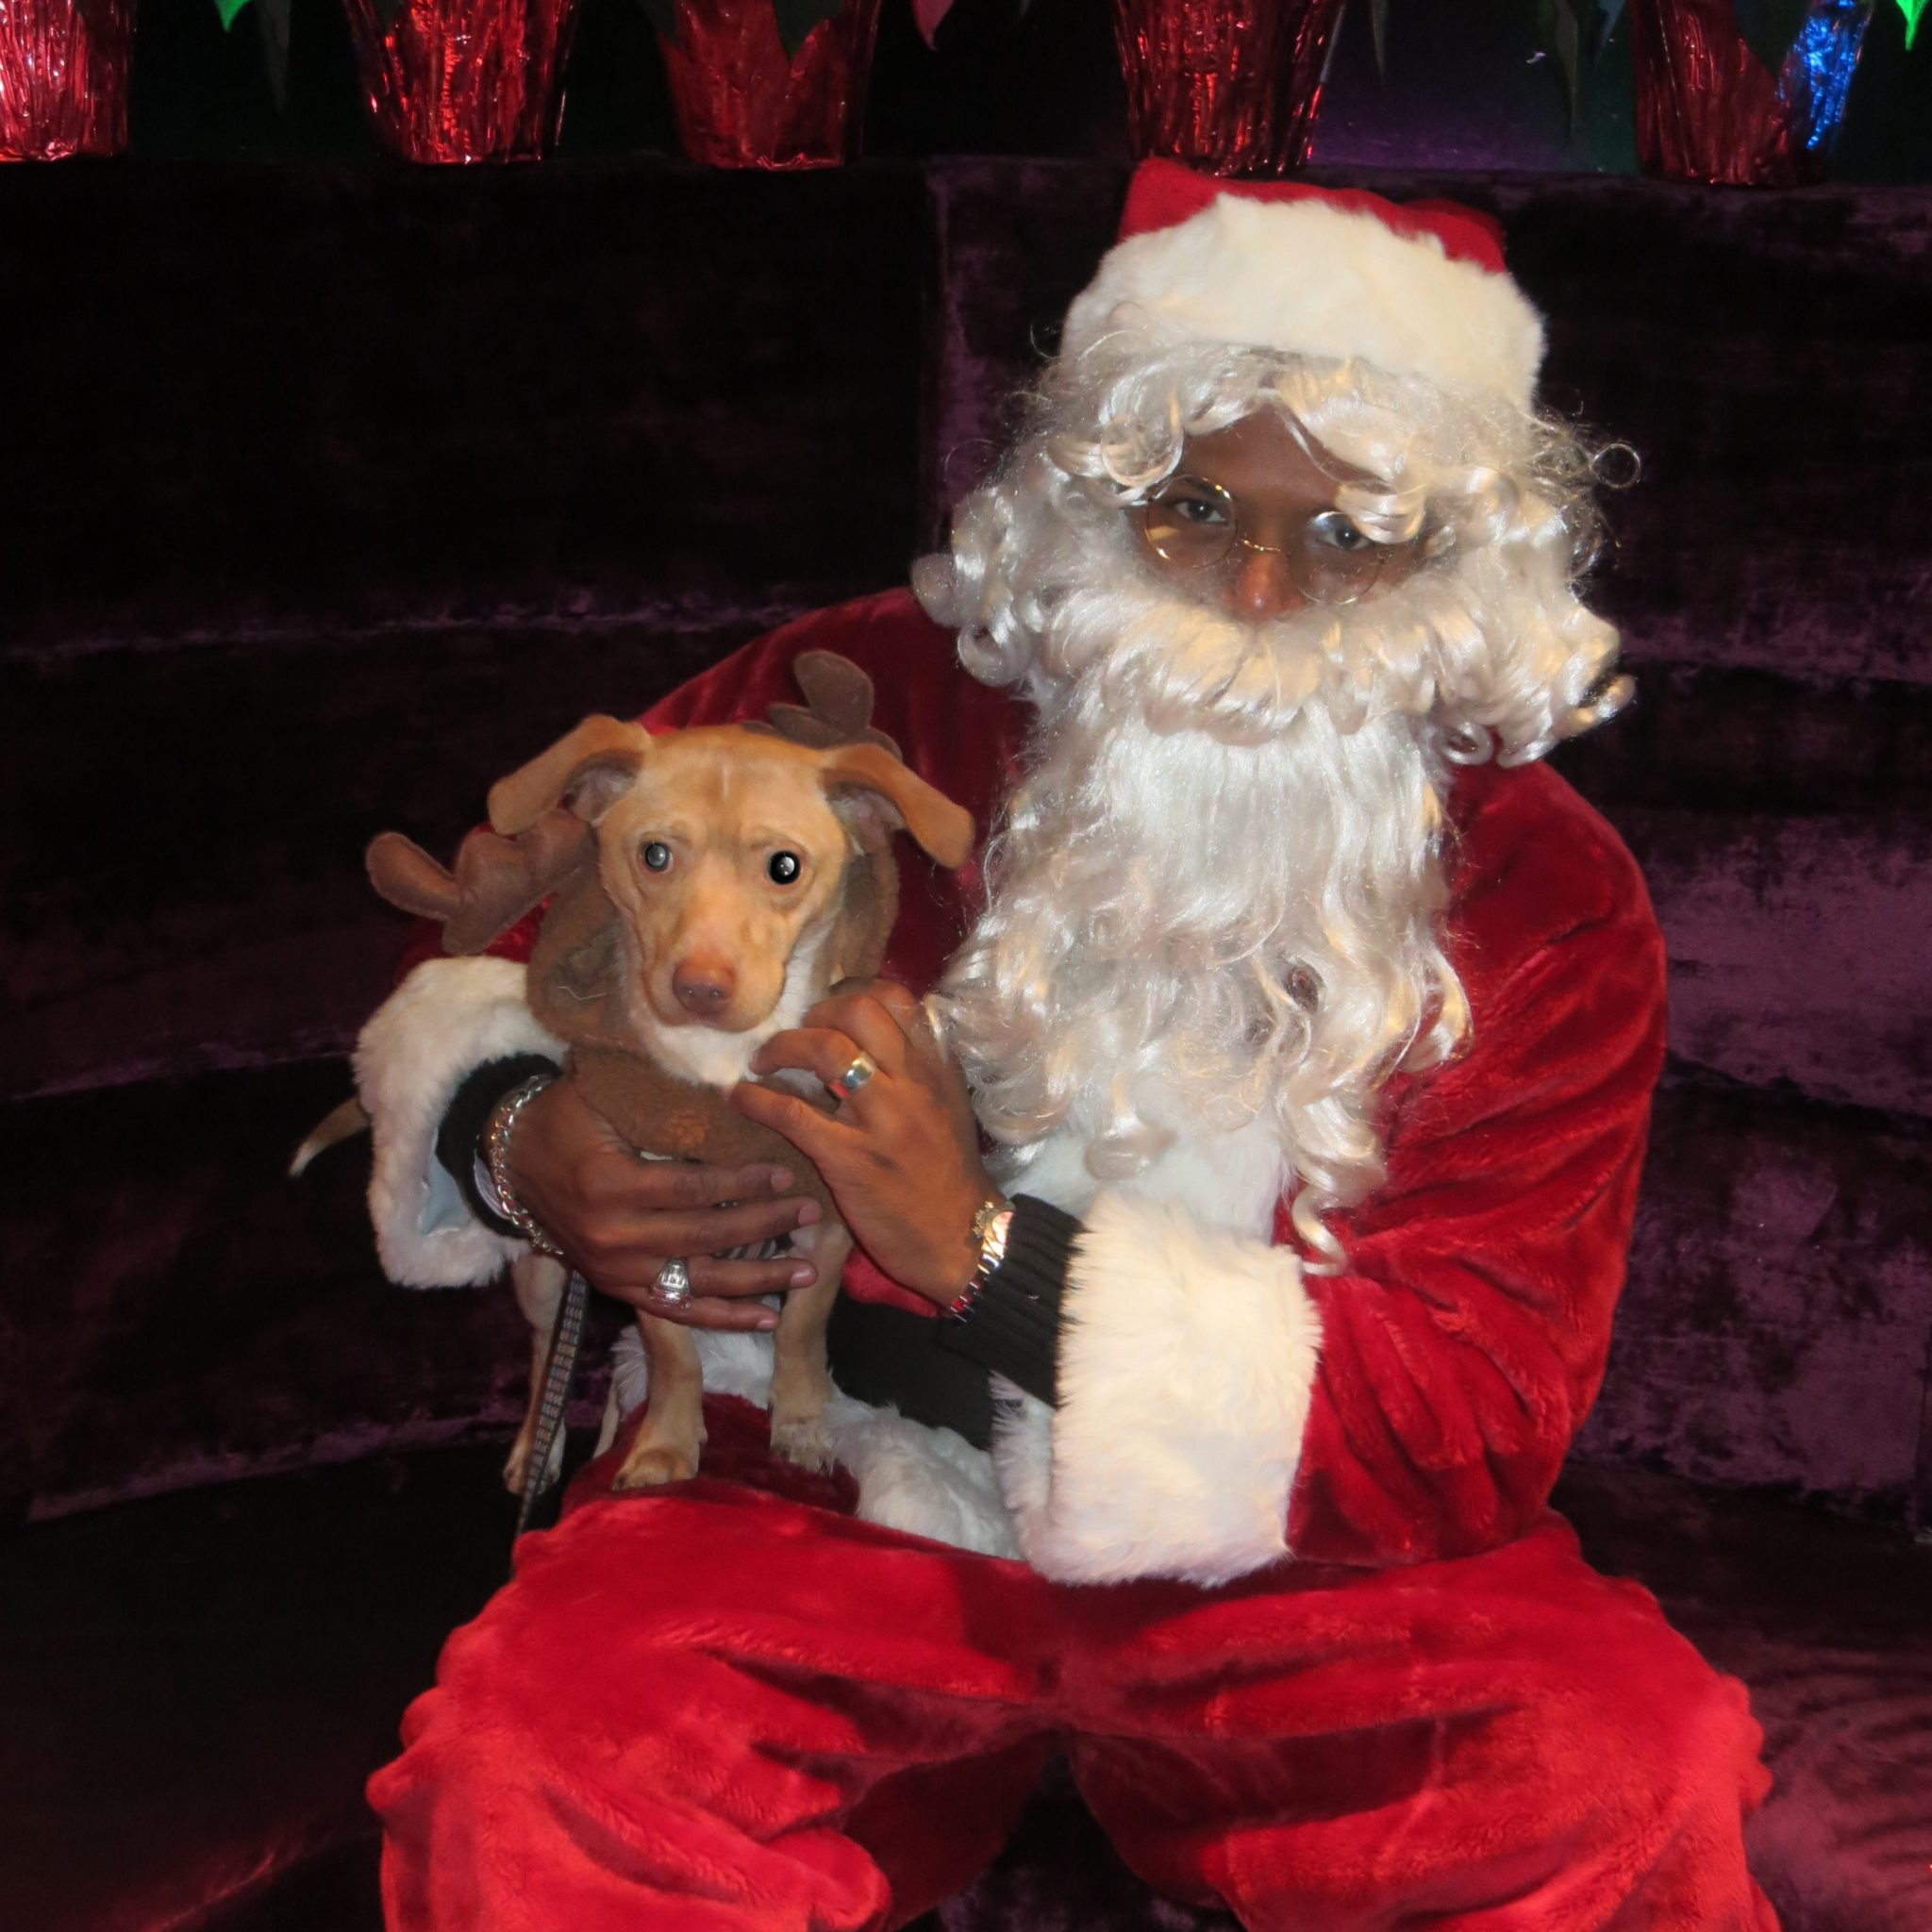 Who Let The Dogs Out – Santa! Our 10th Annual Toys For Dogs Raised Over $10,000!